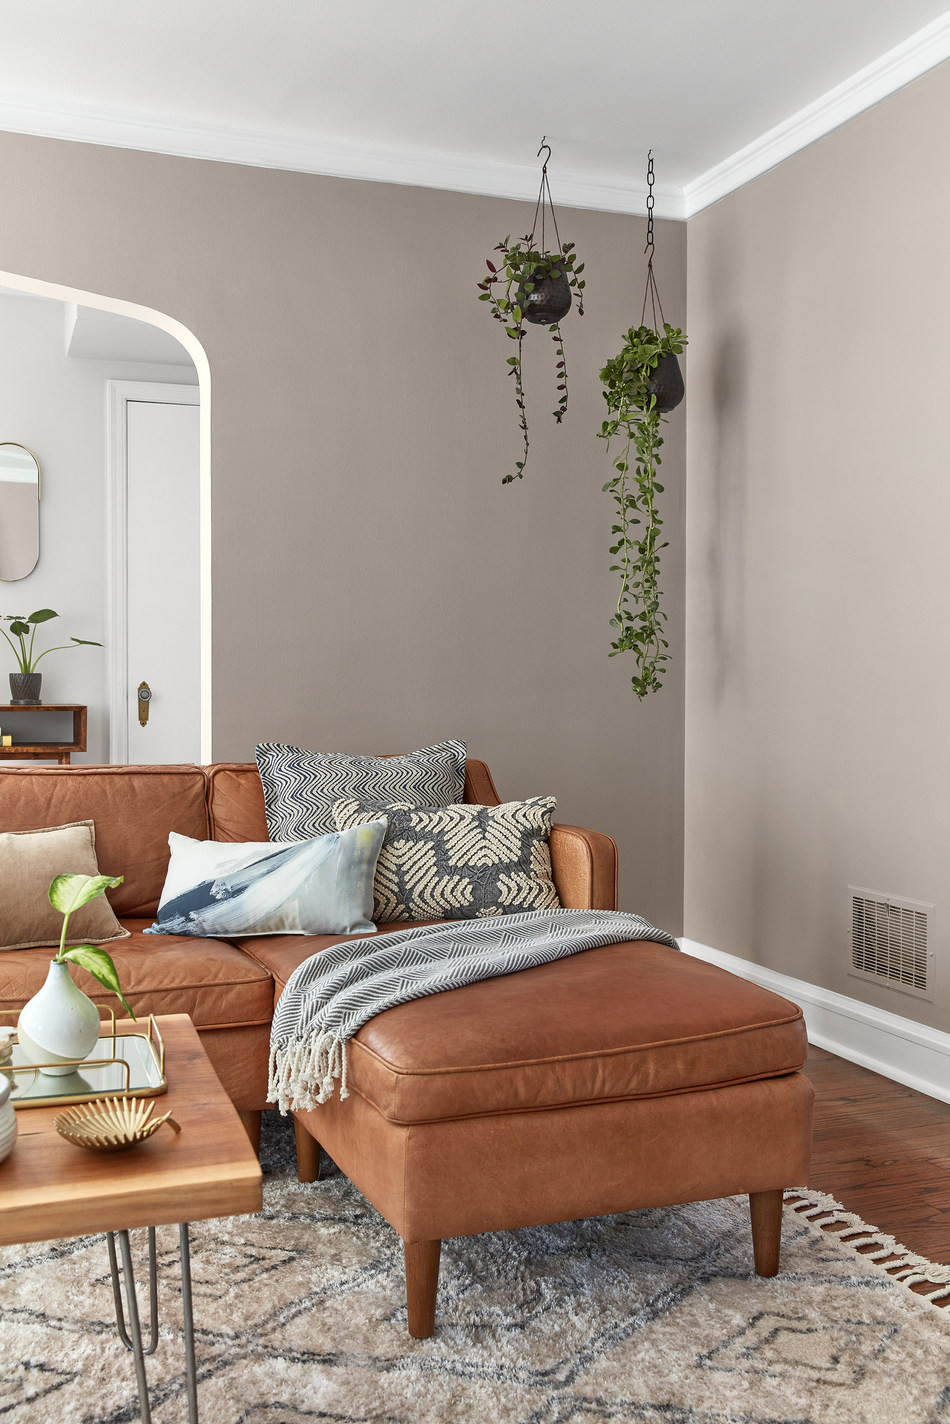 Paint Colors For Bedroom 2020  Valspar Announces 2020 Colors of the Year Inspired by Nature